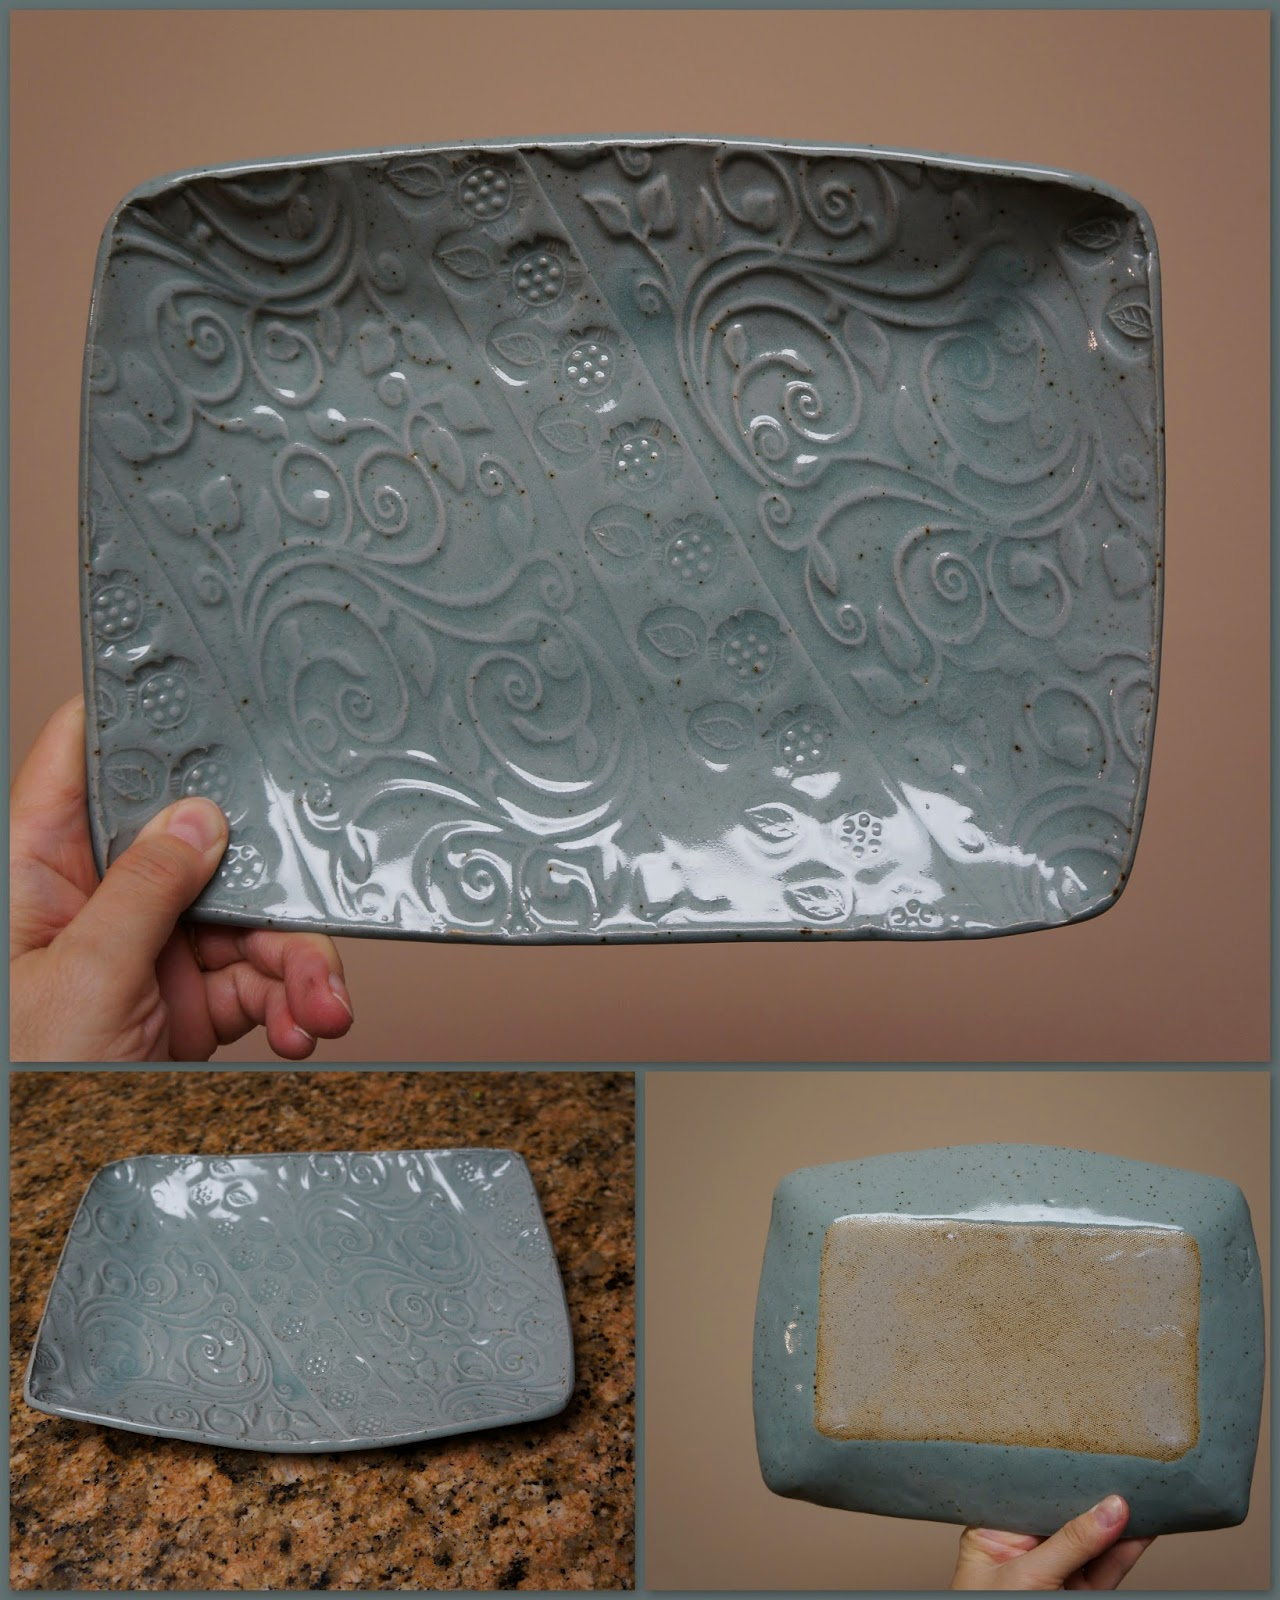 Unique handmade nature inspired ceramic stoneware pottery leaf plate / platter glazed in celadon